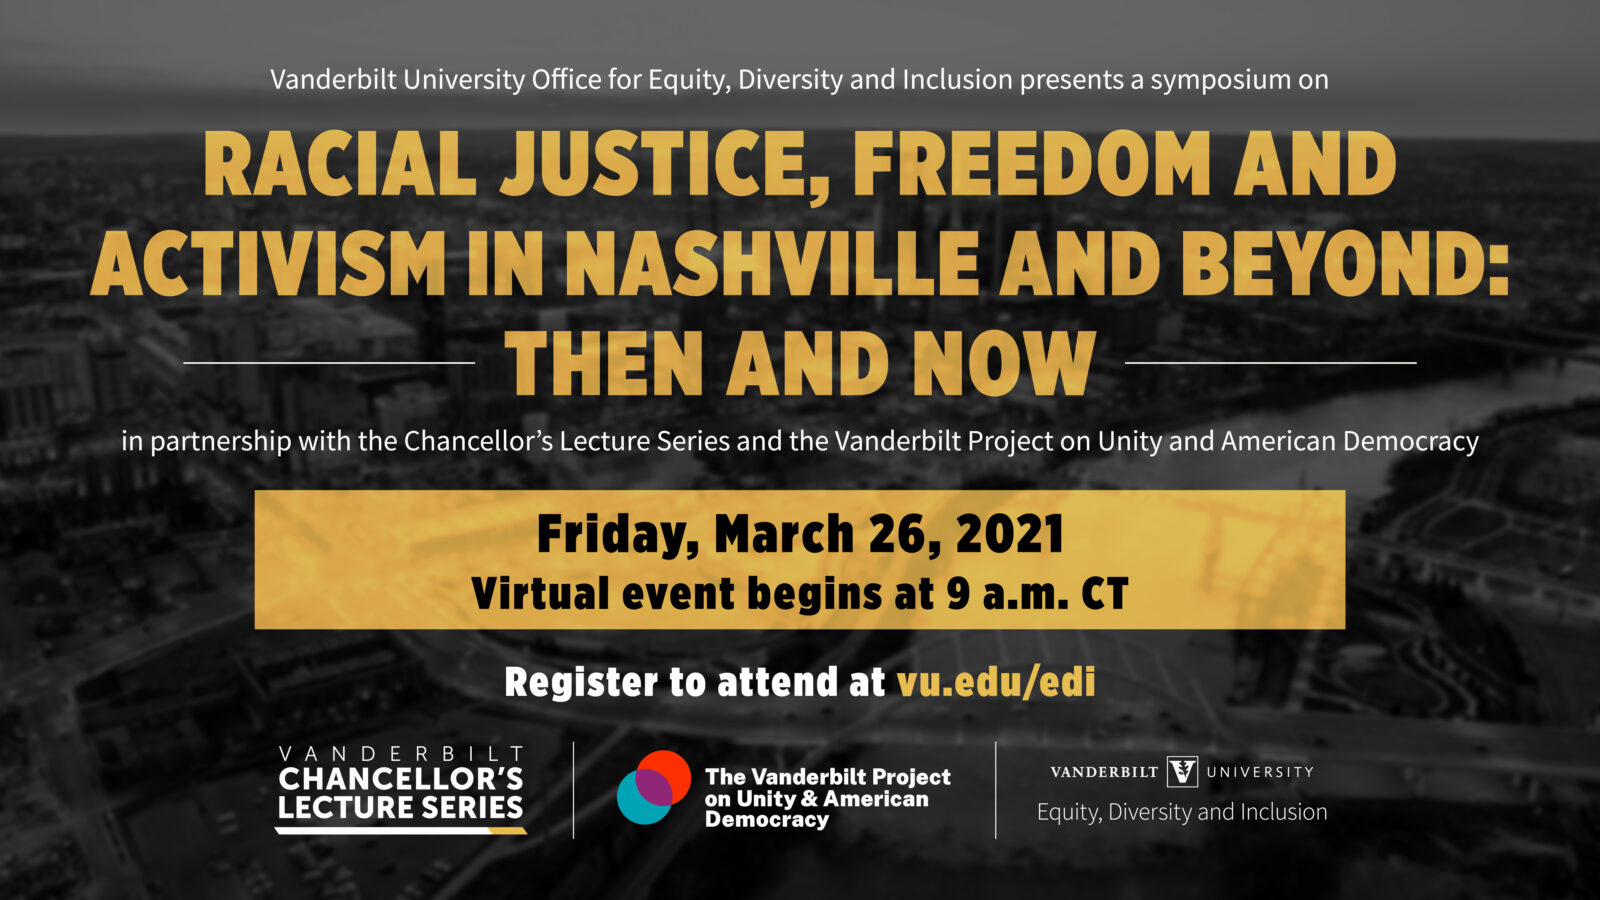 Racial Justice, Freedom and Activism in Nashville and Beyond: Then and Now Symposium